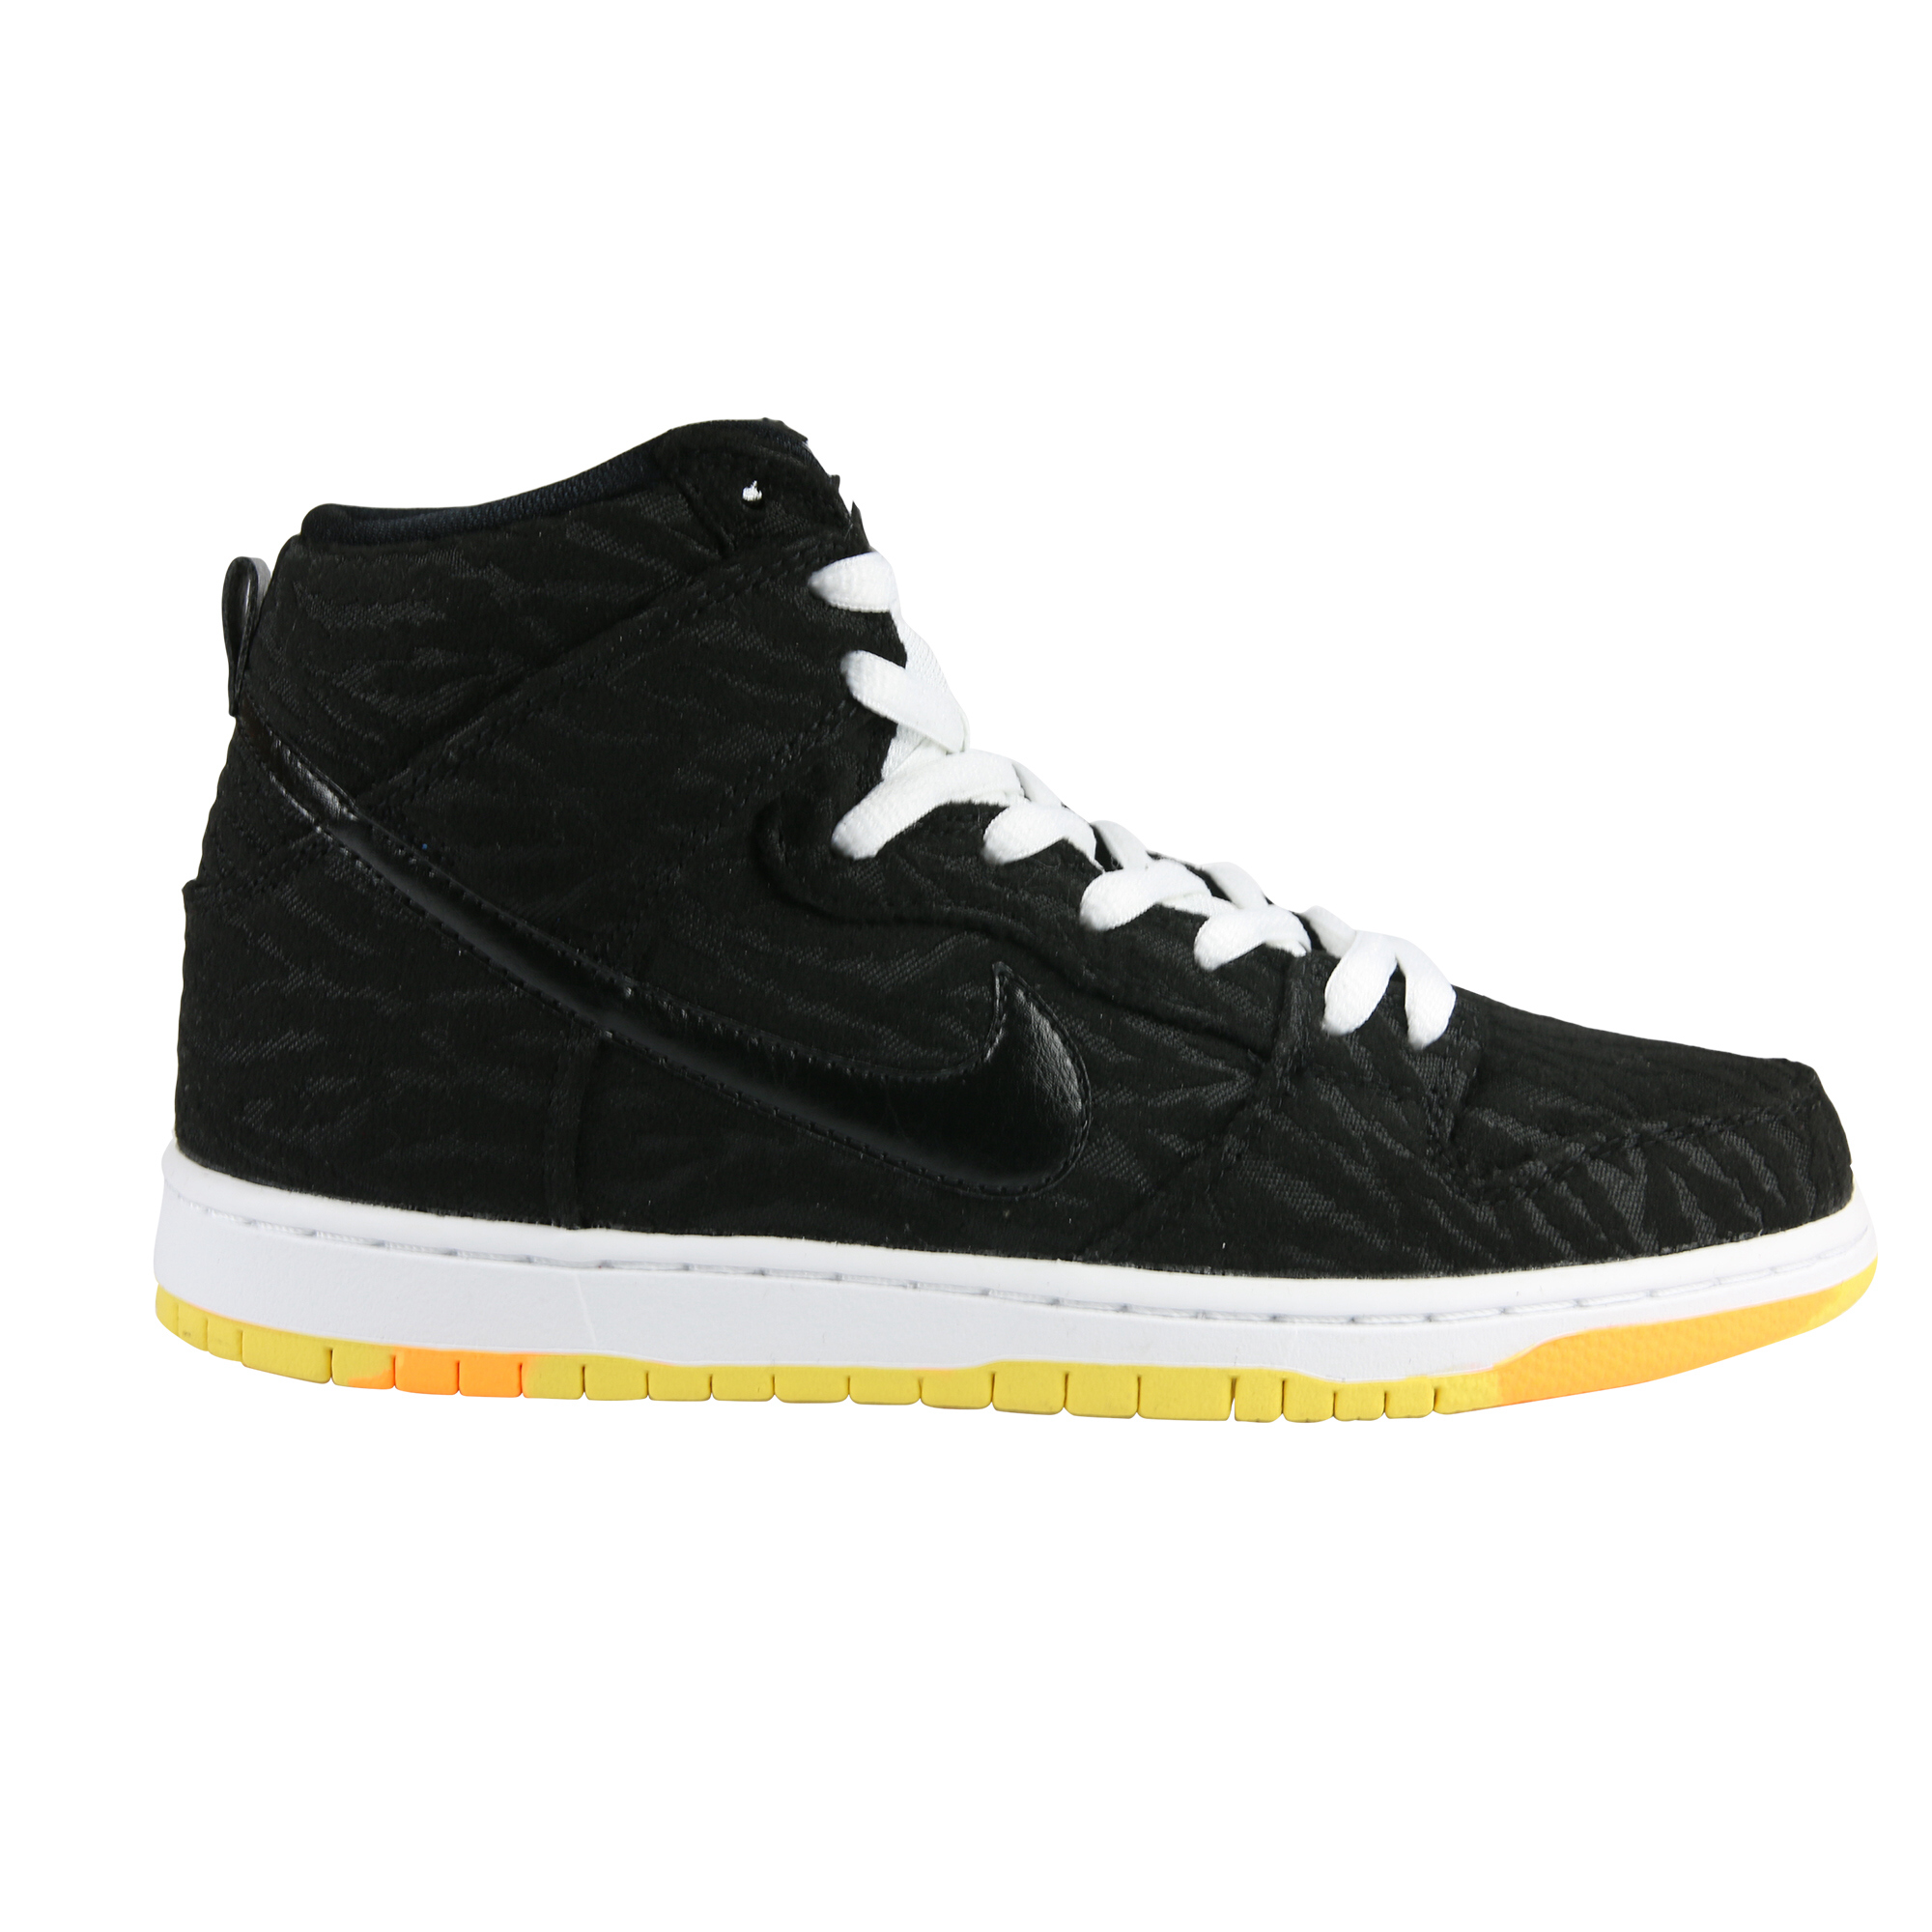 nike sb dunk high premium skunk schuhe turnschuhe sneaker skaterschuhe herren ebay. Black Bedroom Furniture Sets. Home Design Ideas